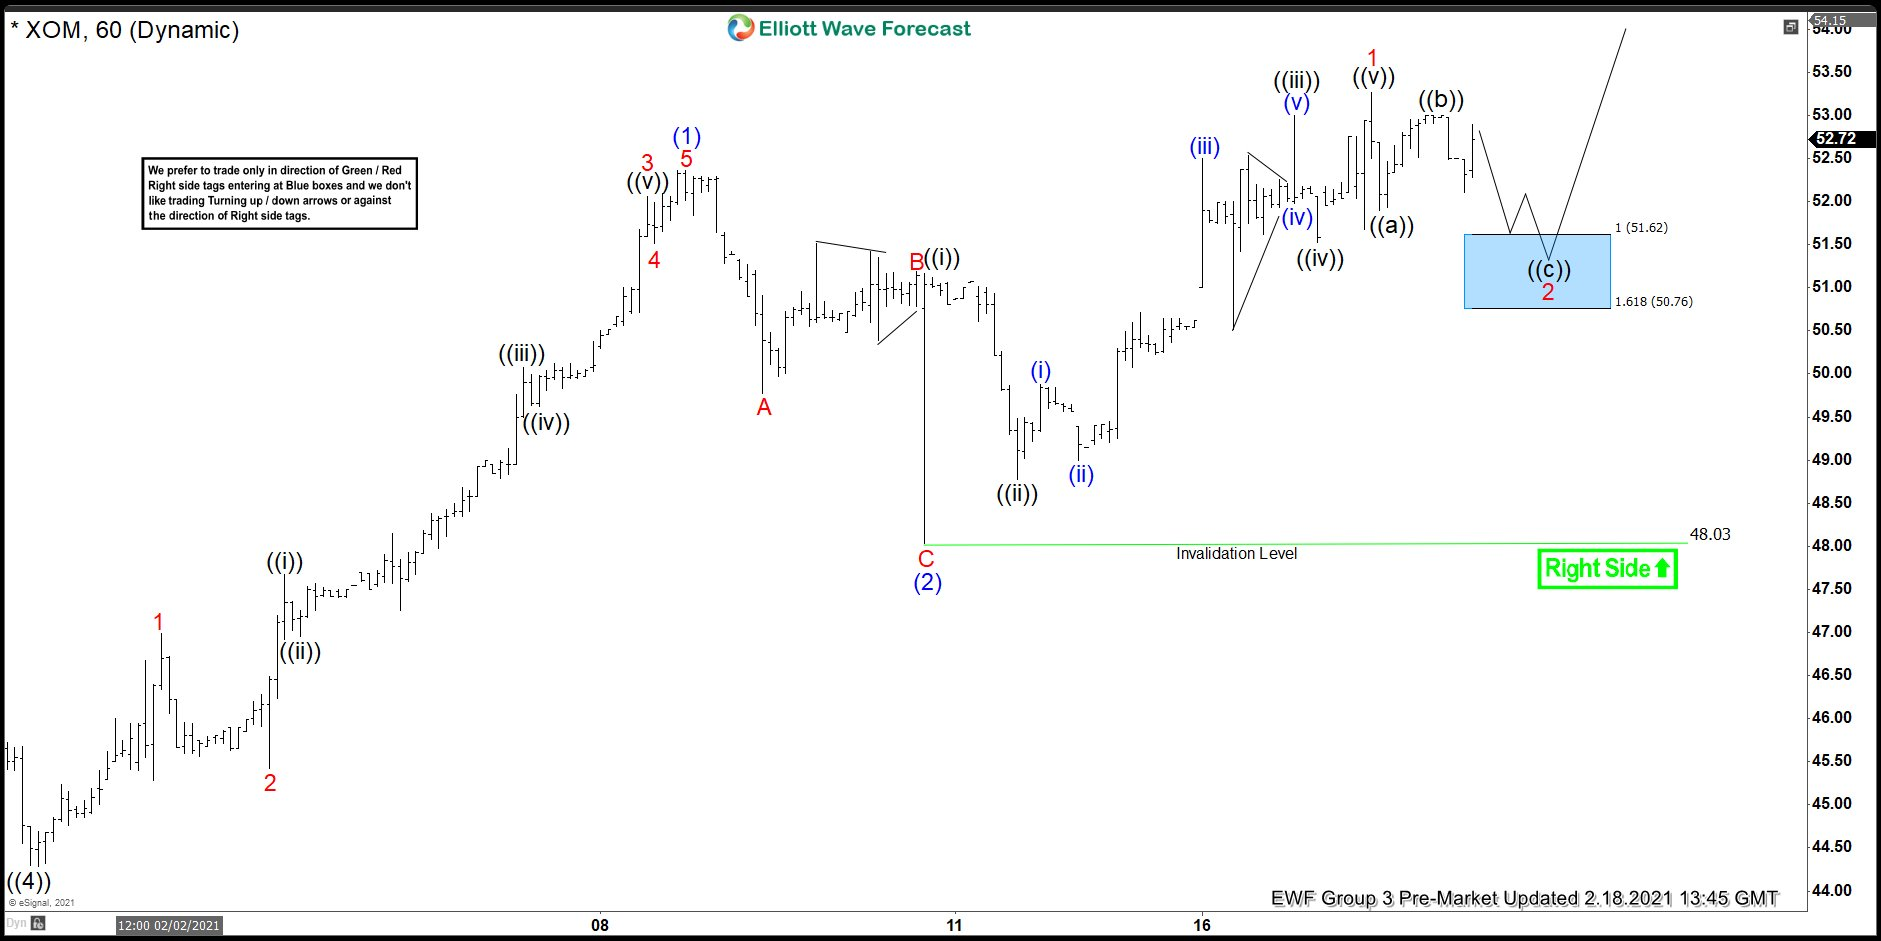 Exxon Mobil (XOM): Forecasting The Elliott Wave Path